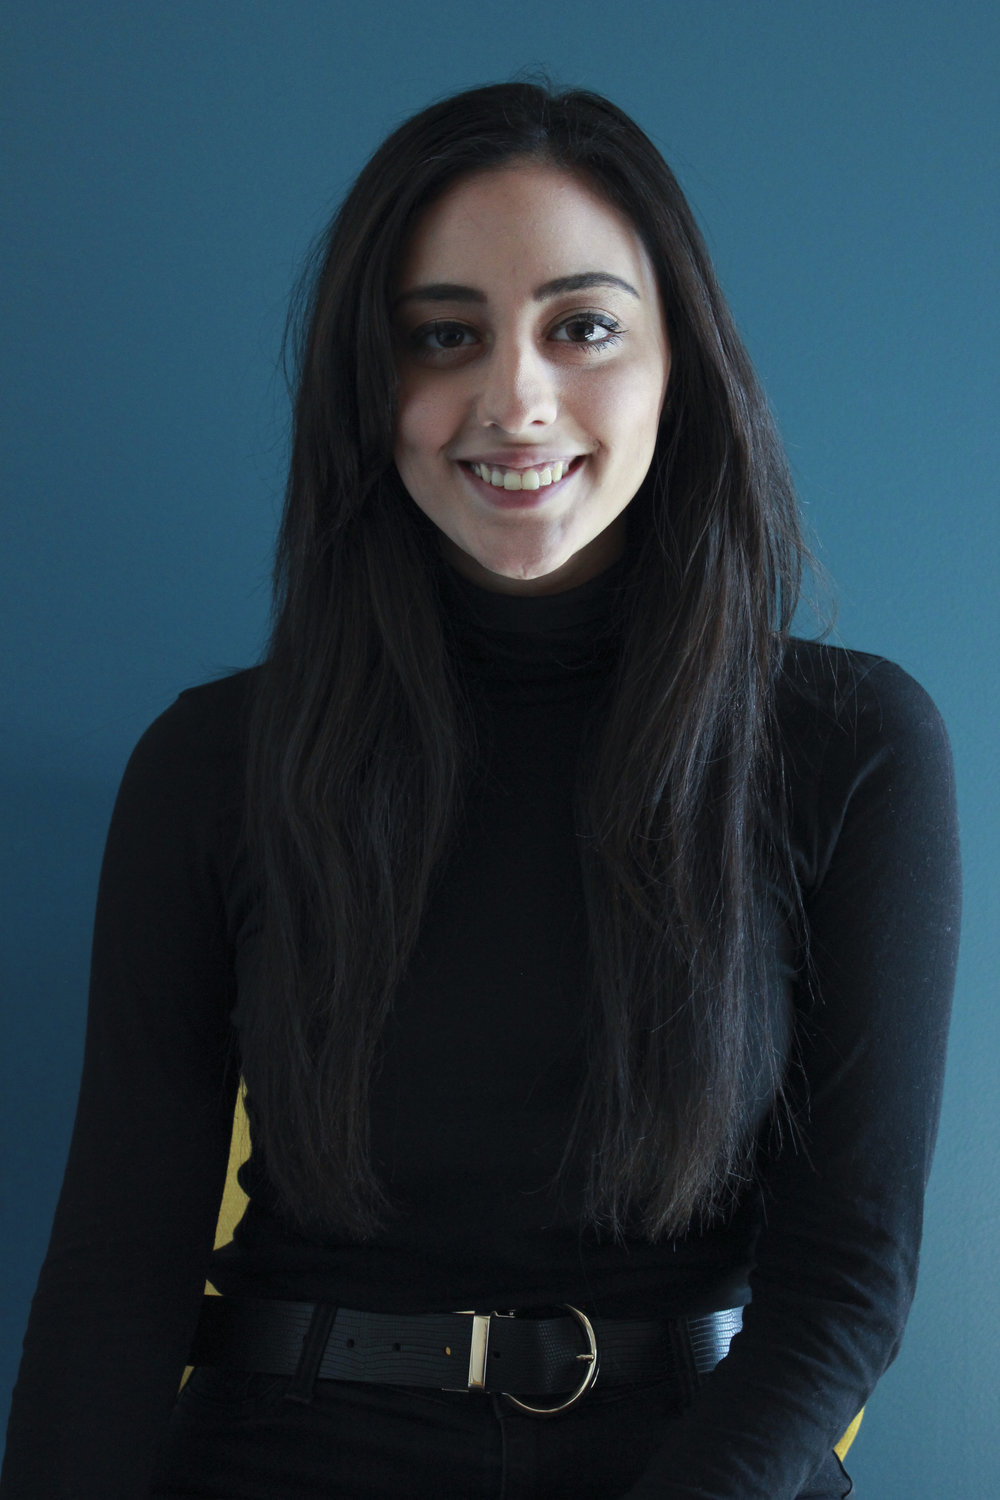 Tatyana Youssef - Born in Beirut, Lebanon, Tatyana Youssef is a senior journalism major now living in Franklin, Massachusetts. With a passion for social justice, she is pursuing a degree in higher education after graduation. However, the other half of her life is committed to music and art.